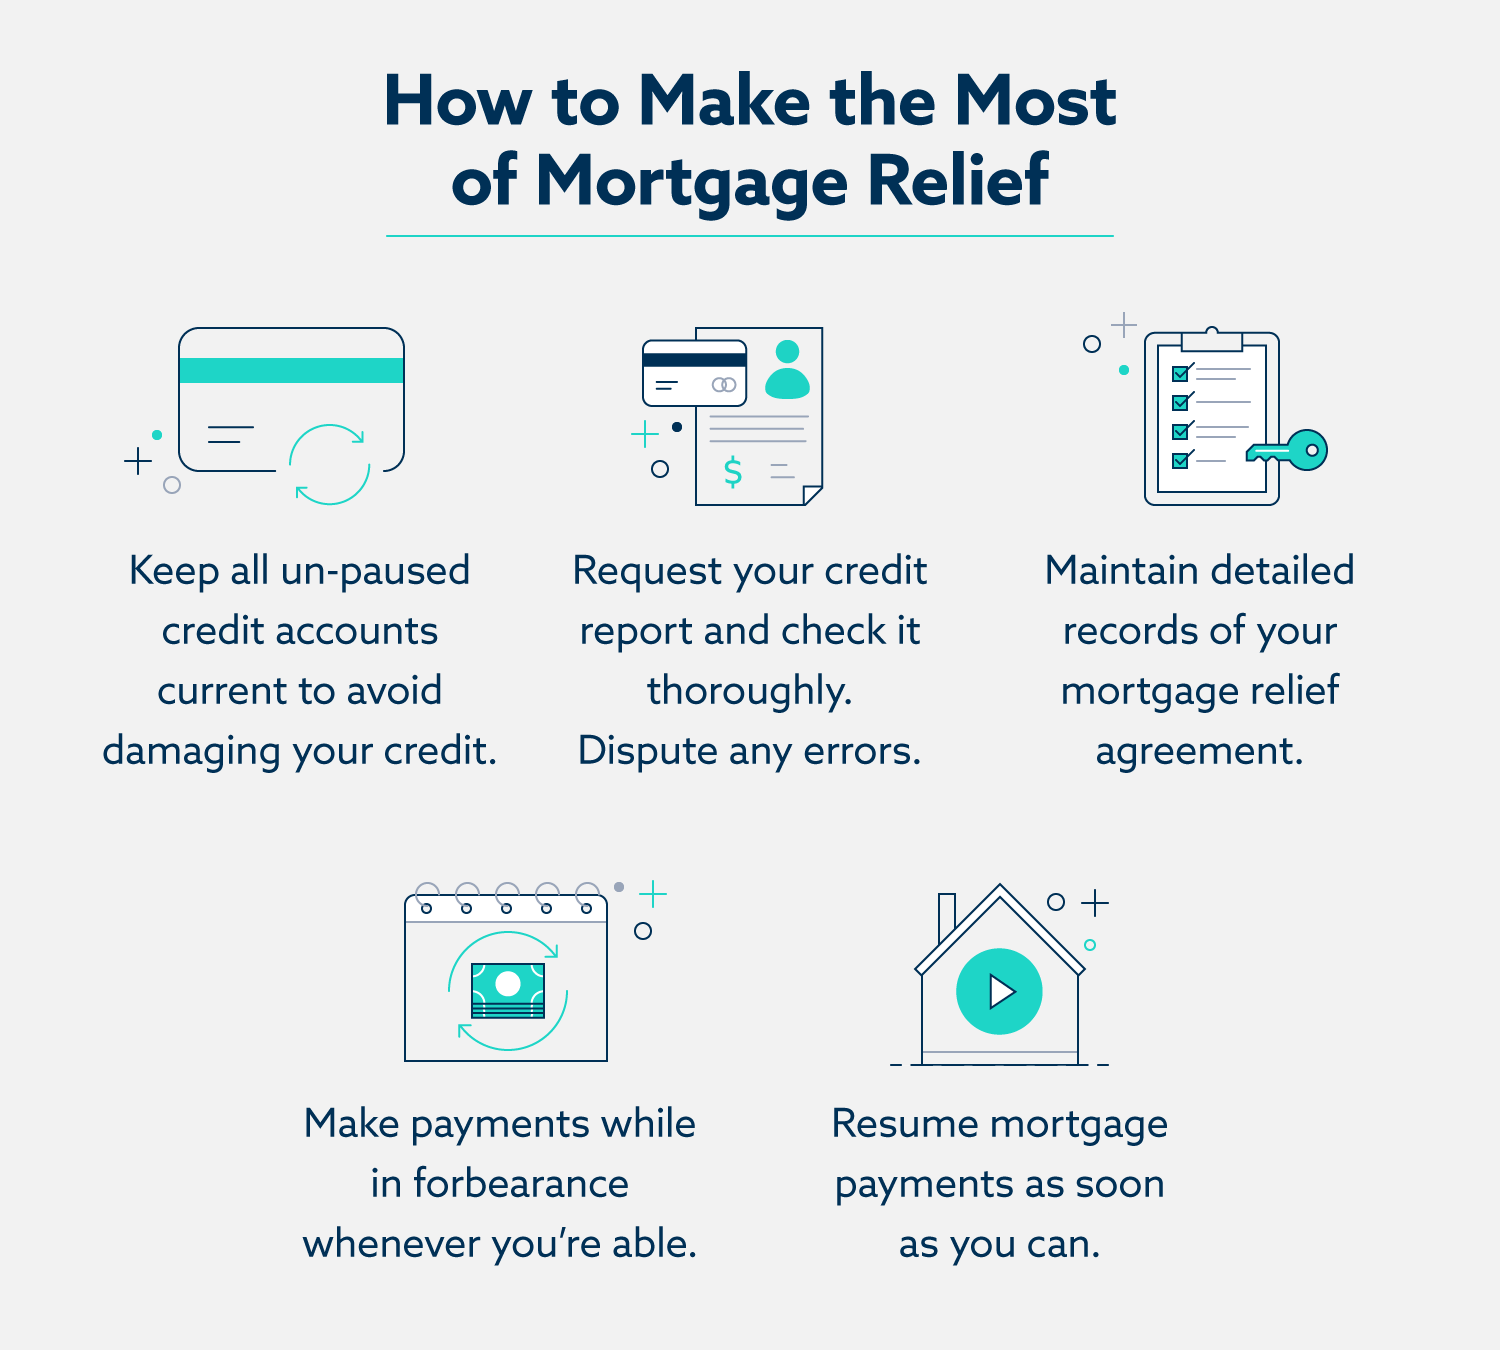 How to Make the Most of Mortgage Relief